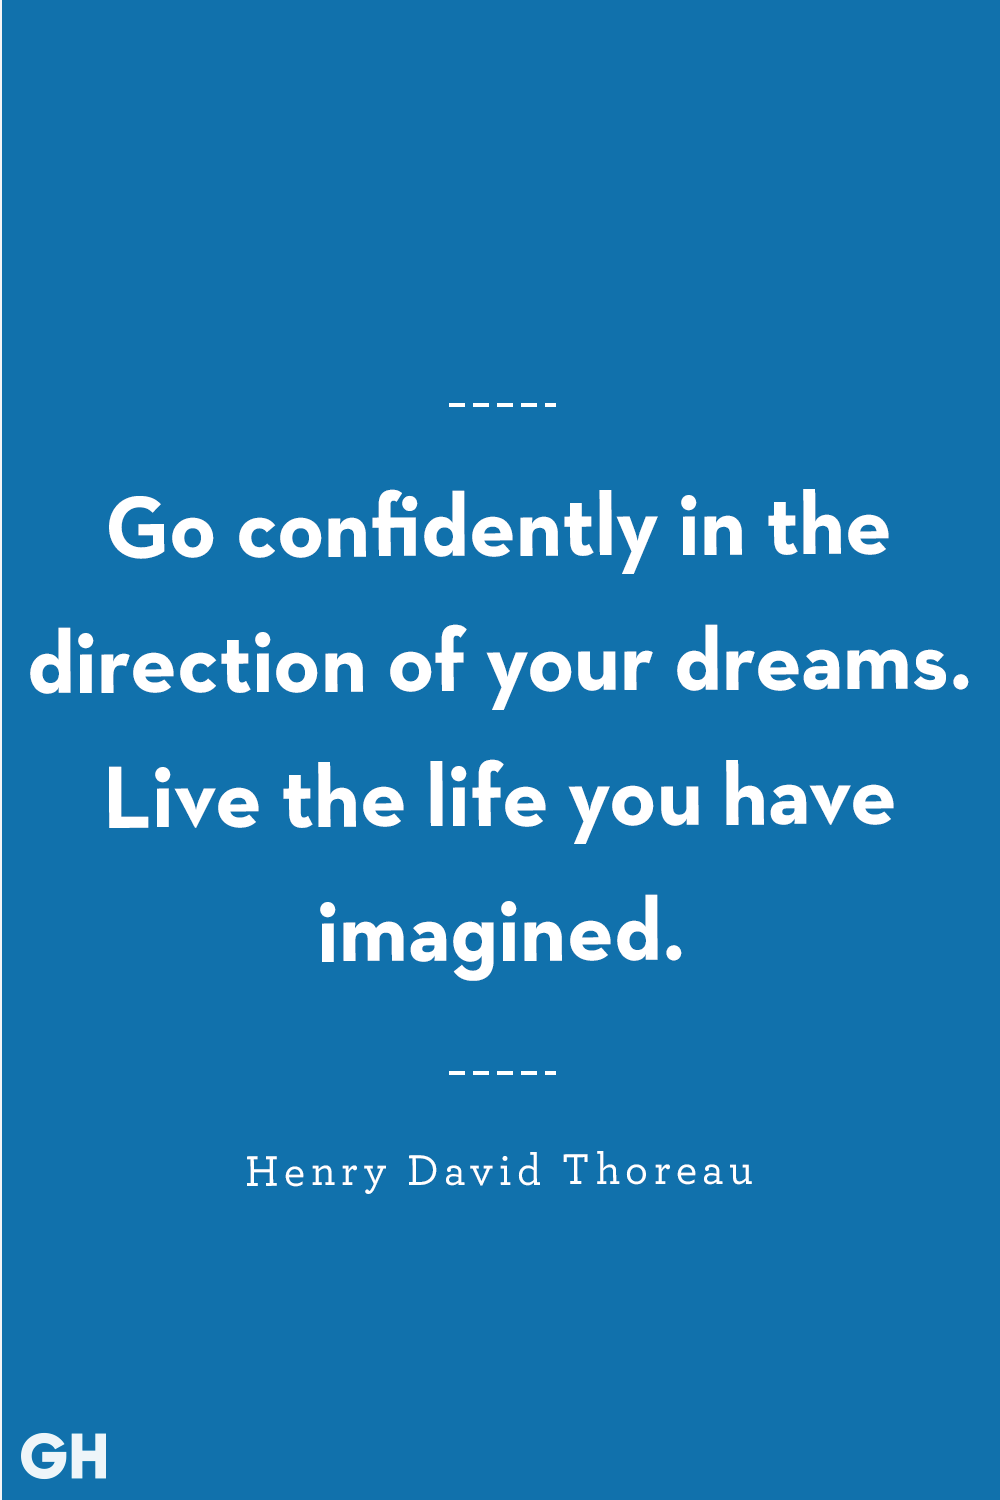 8588-inspirational-graduation-quotes-henry-david-thoreau-1557341924.png